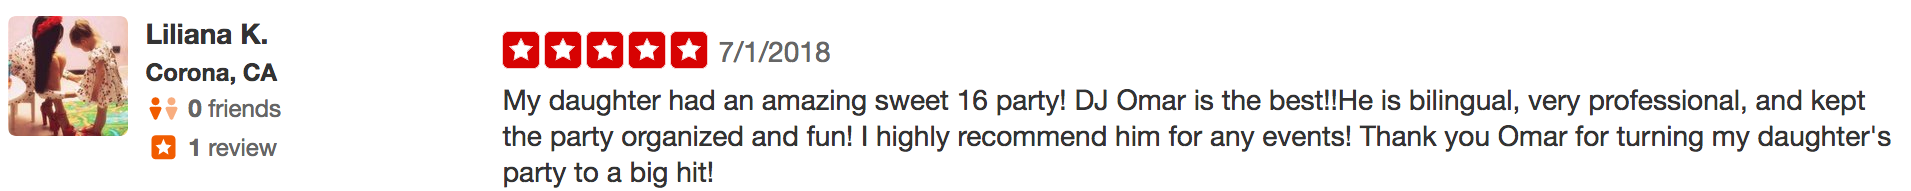 lillana dj sweet 16 5 star review